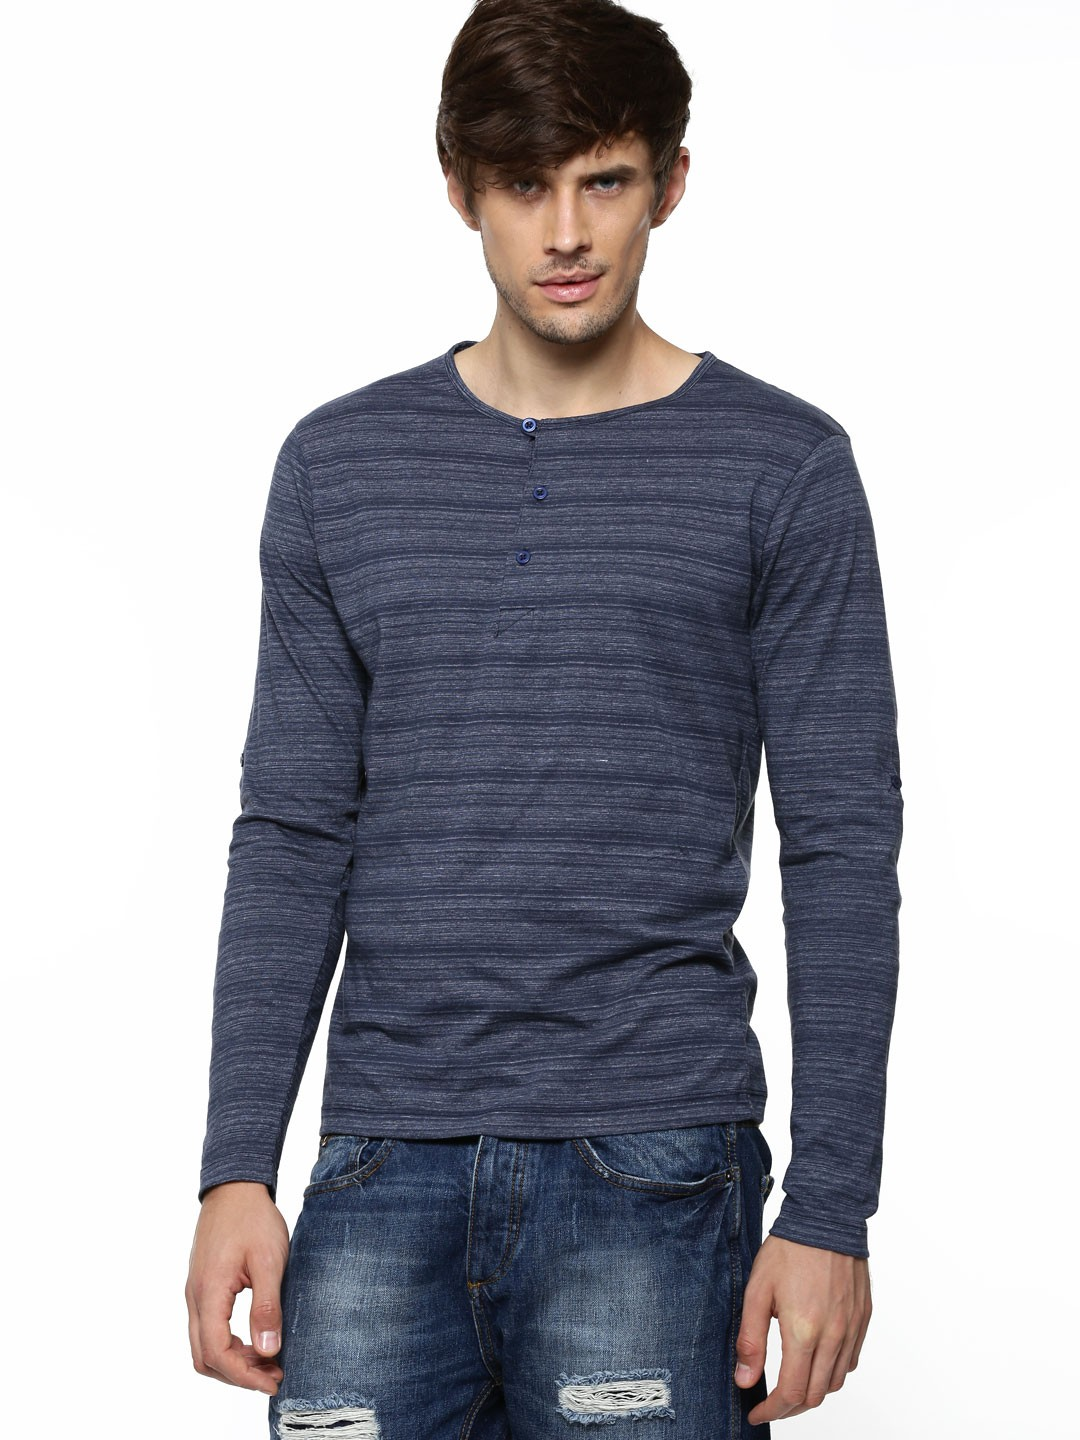 Buy Voi Jeans Henley Neck Full Sleeve Tee For Men Men 39 S